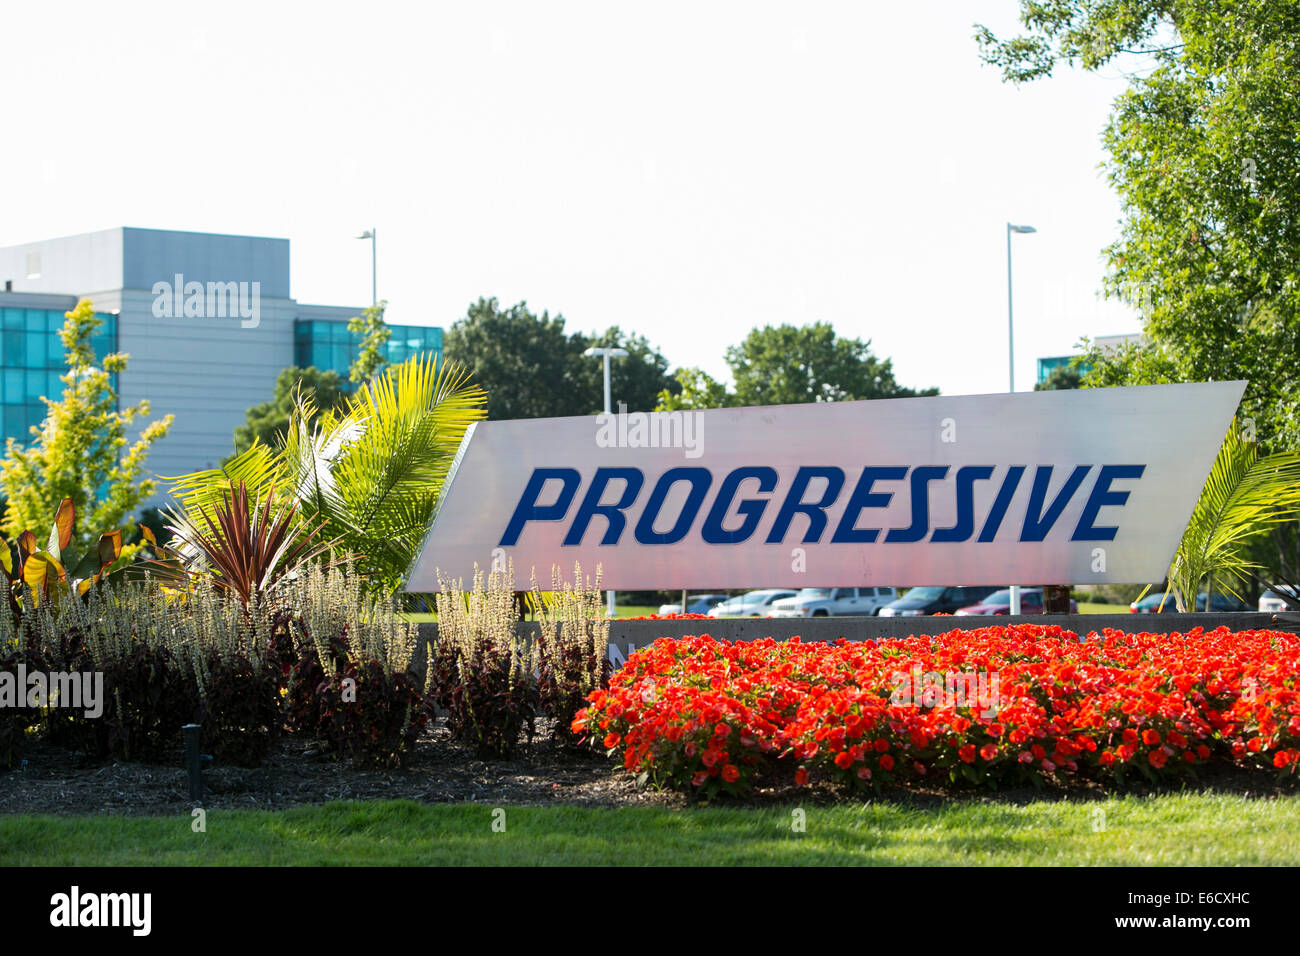 A facility occupied by the Progressive Corporation in Mayfield, Ohio. - Stock Image